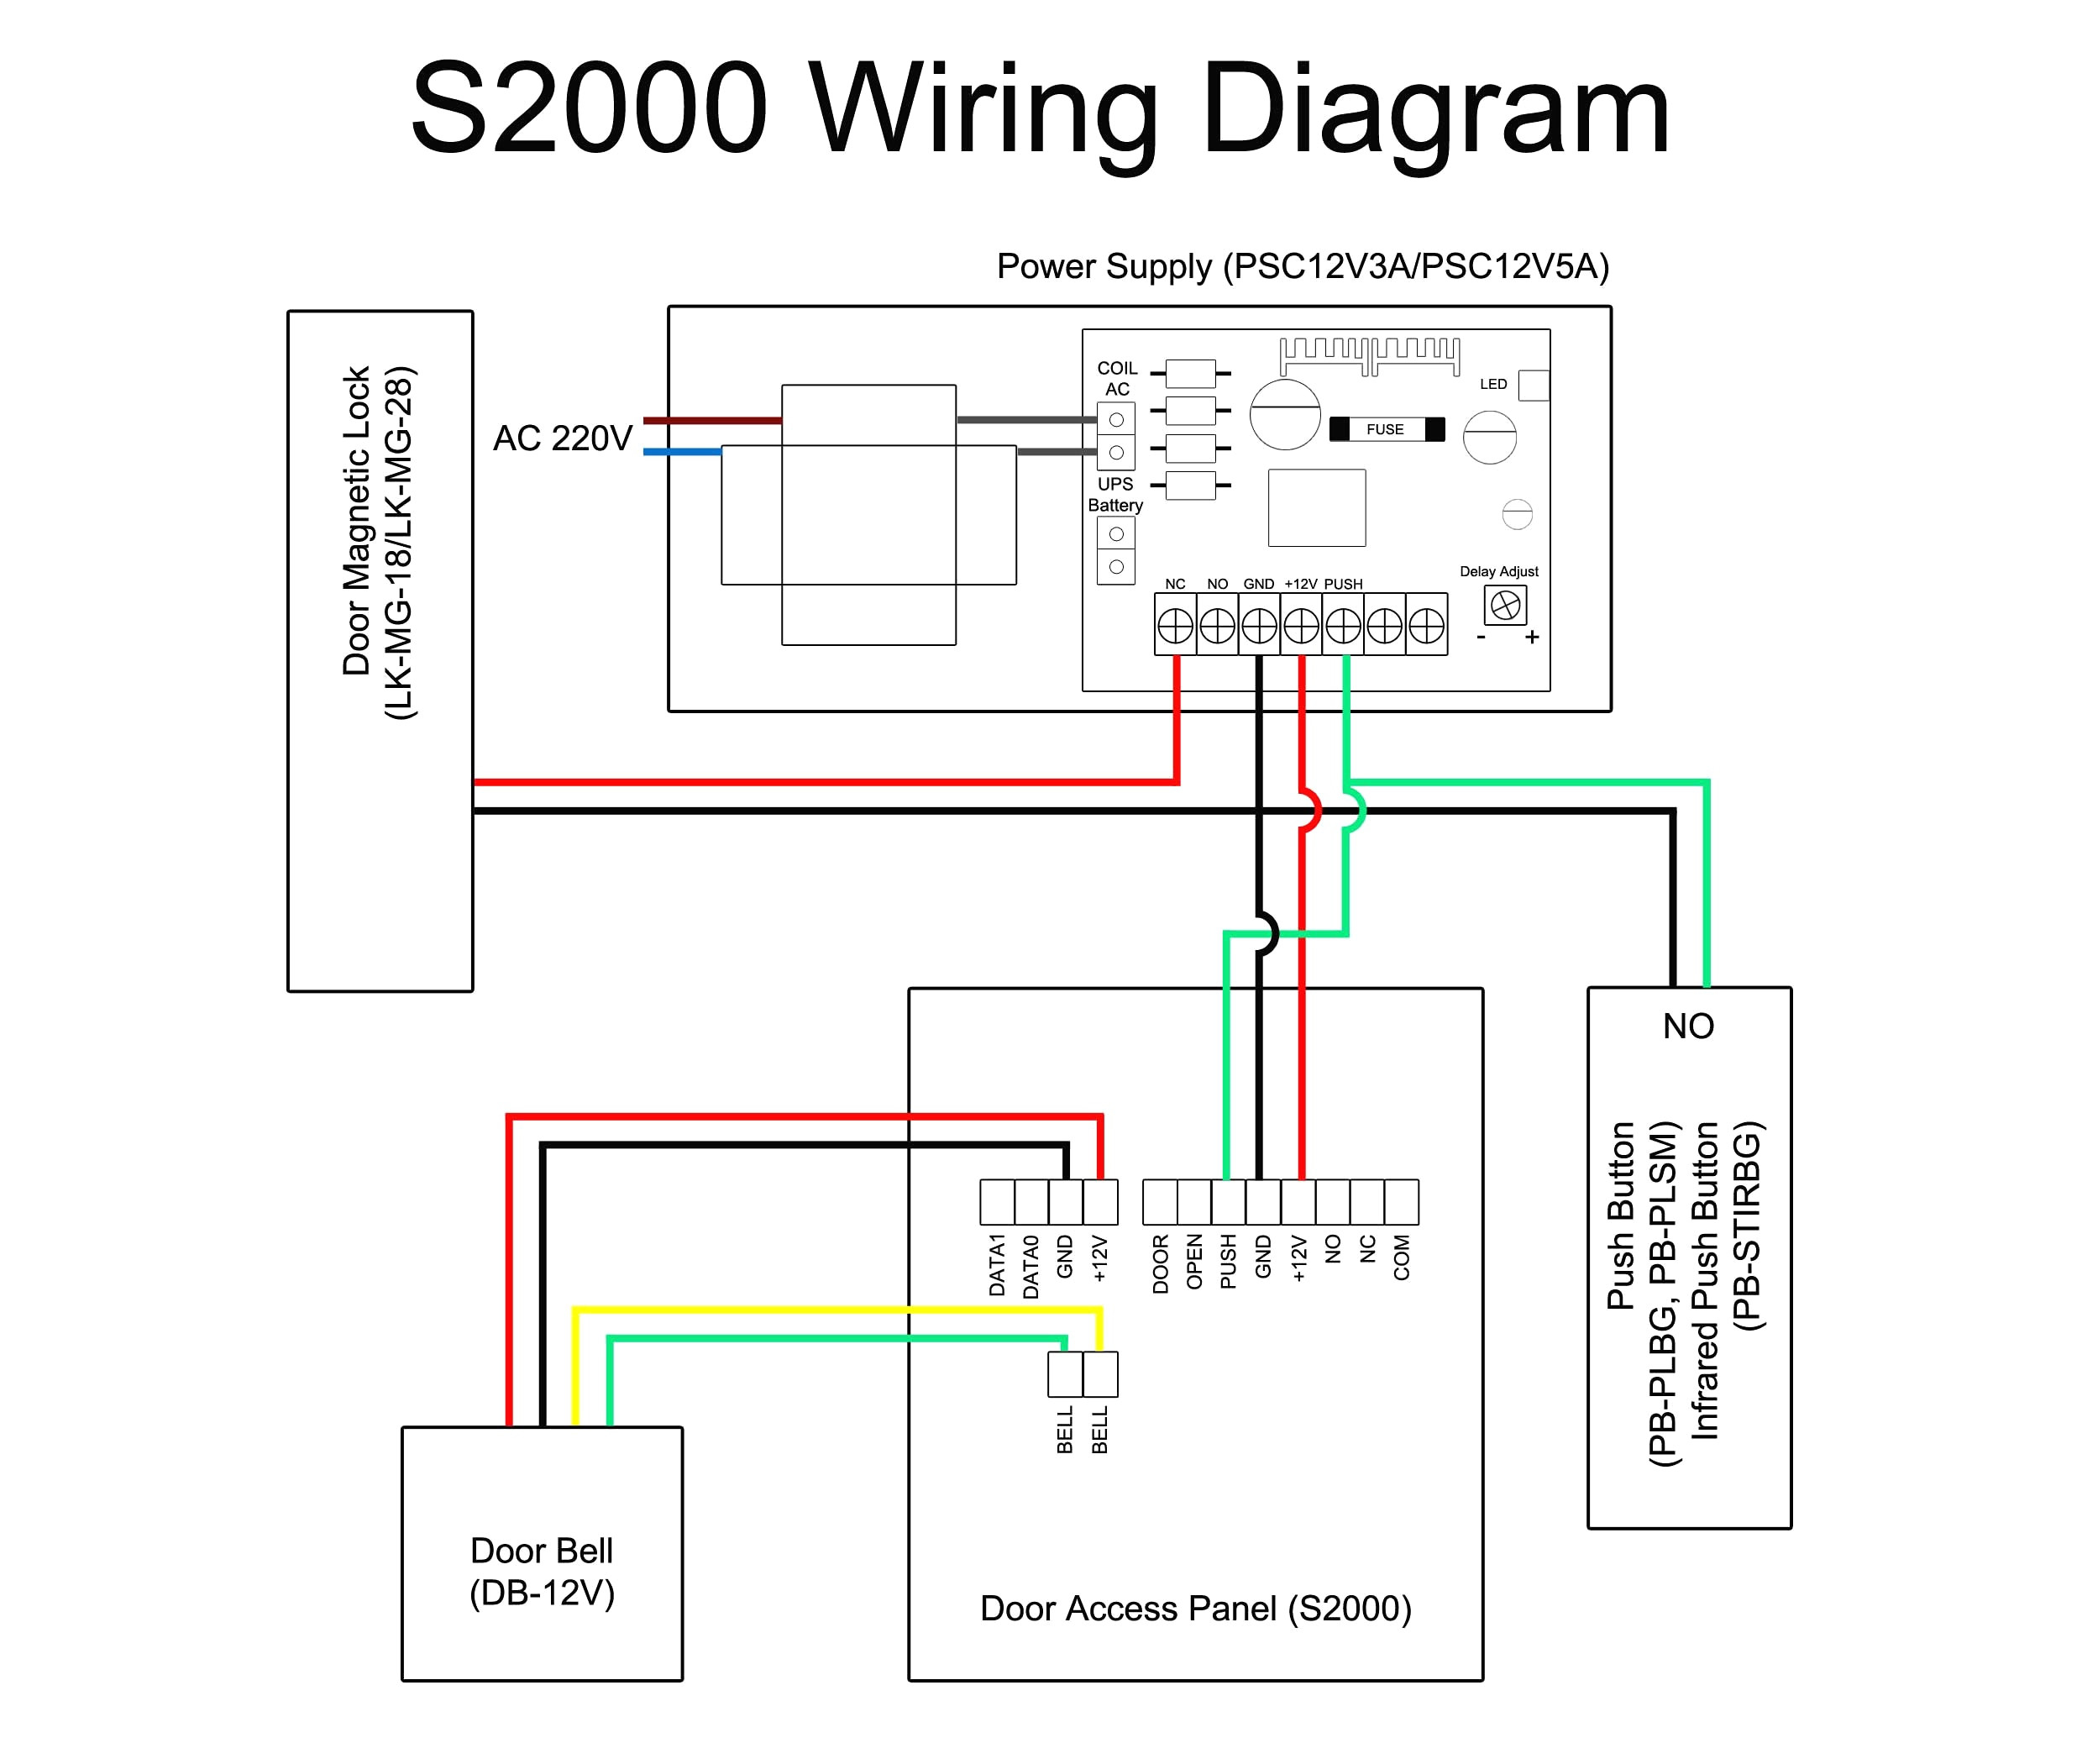 WRG-0721] Rj11 4 Wire Pinout on 4 wire relay wiring diagram, 4 wire light wiring diagram, 4 wire connector wiring diagram, 4 wire pump wiring diagram,